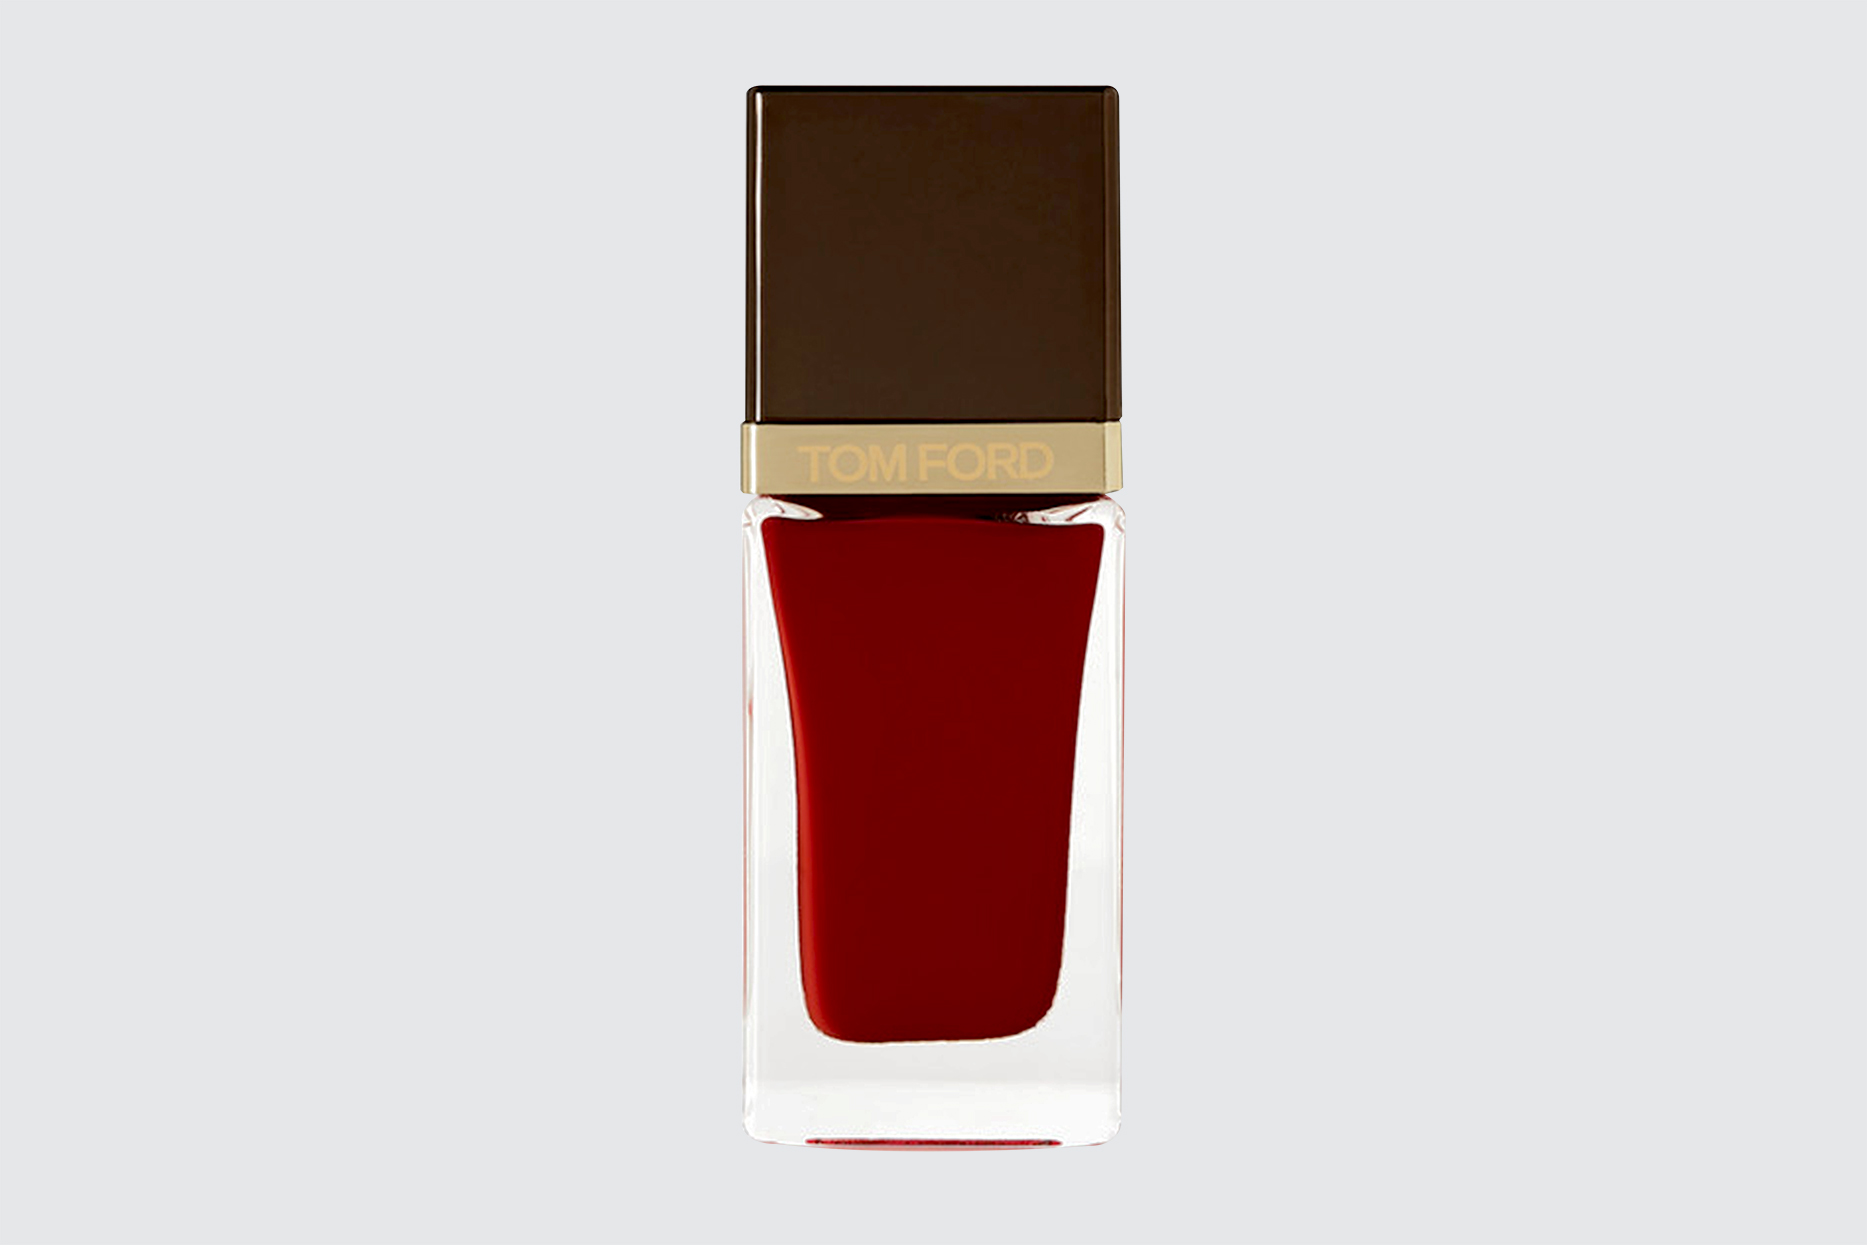 Tom Ford Beauty Nail Polish in Bordeaux Lust